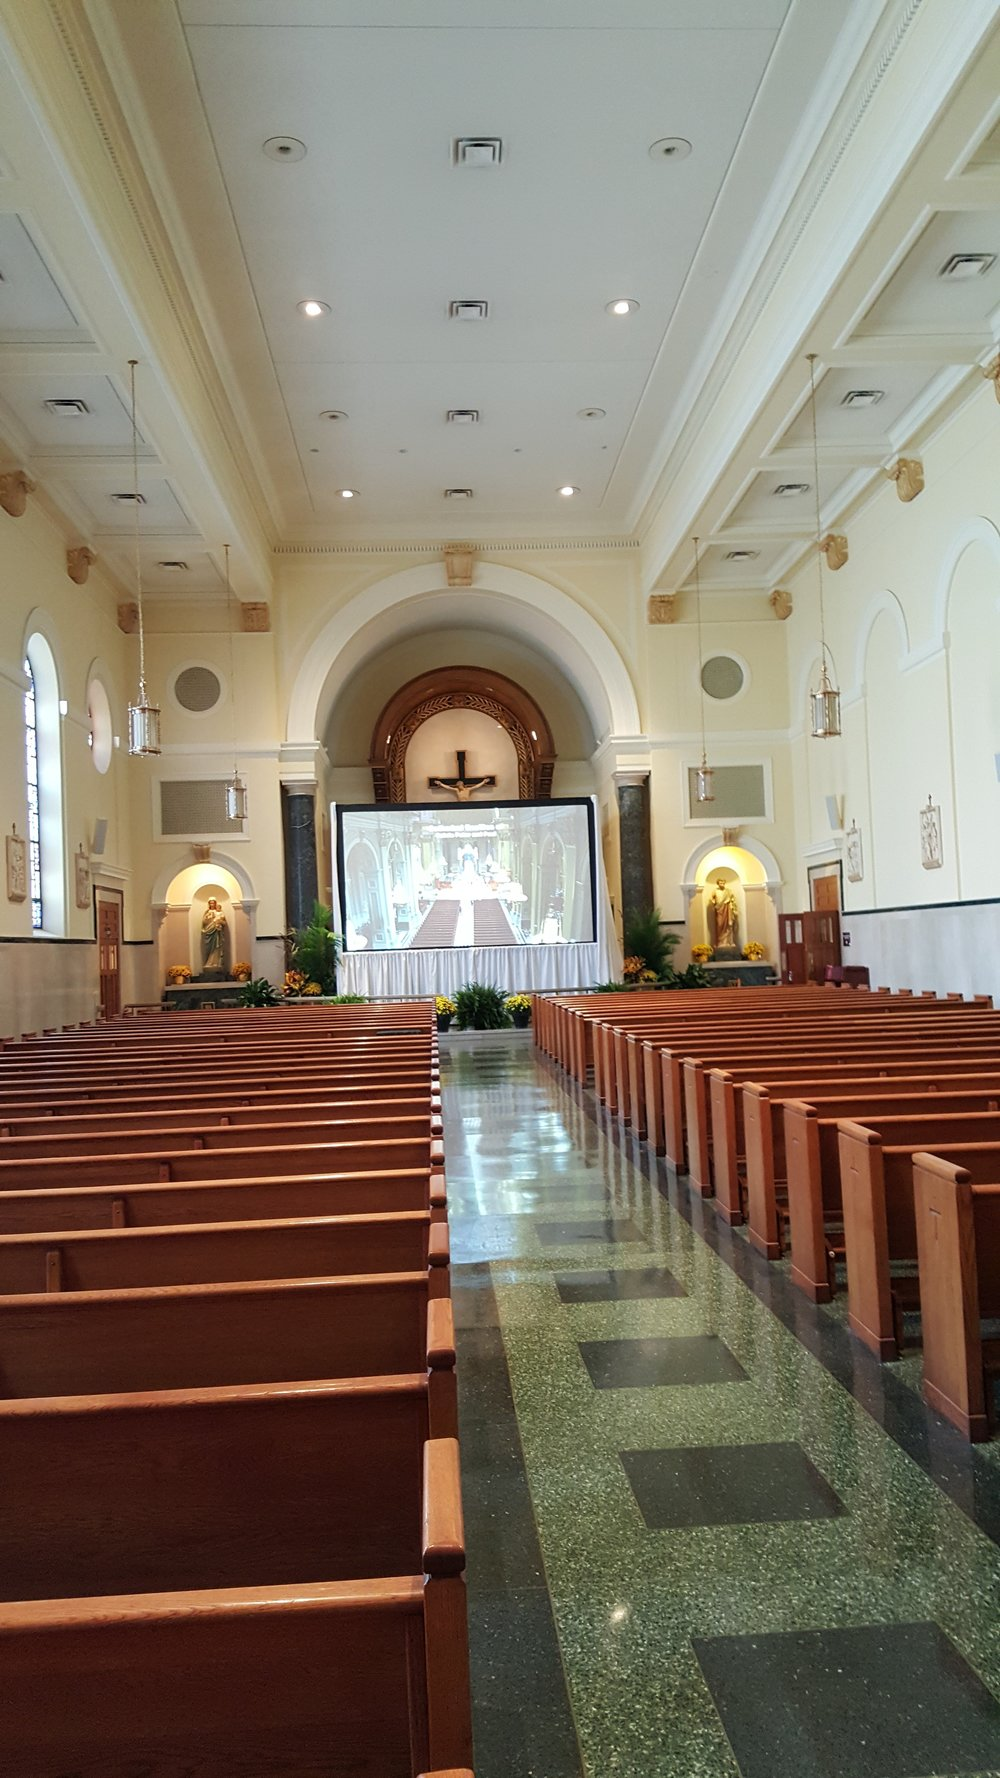 The chapel uses CAMM DT-400 speakers to provide audio coverage.